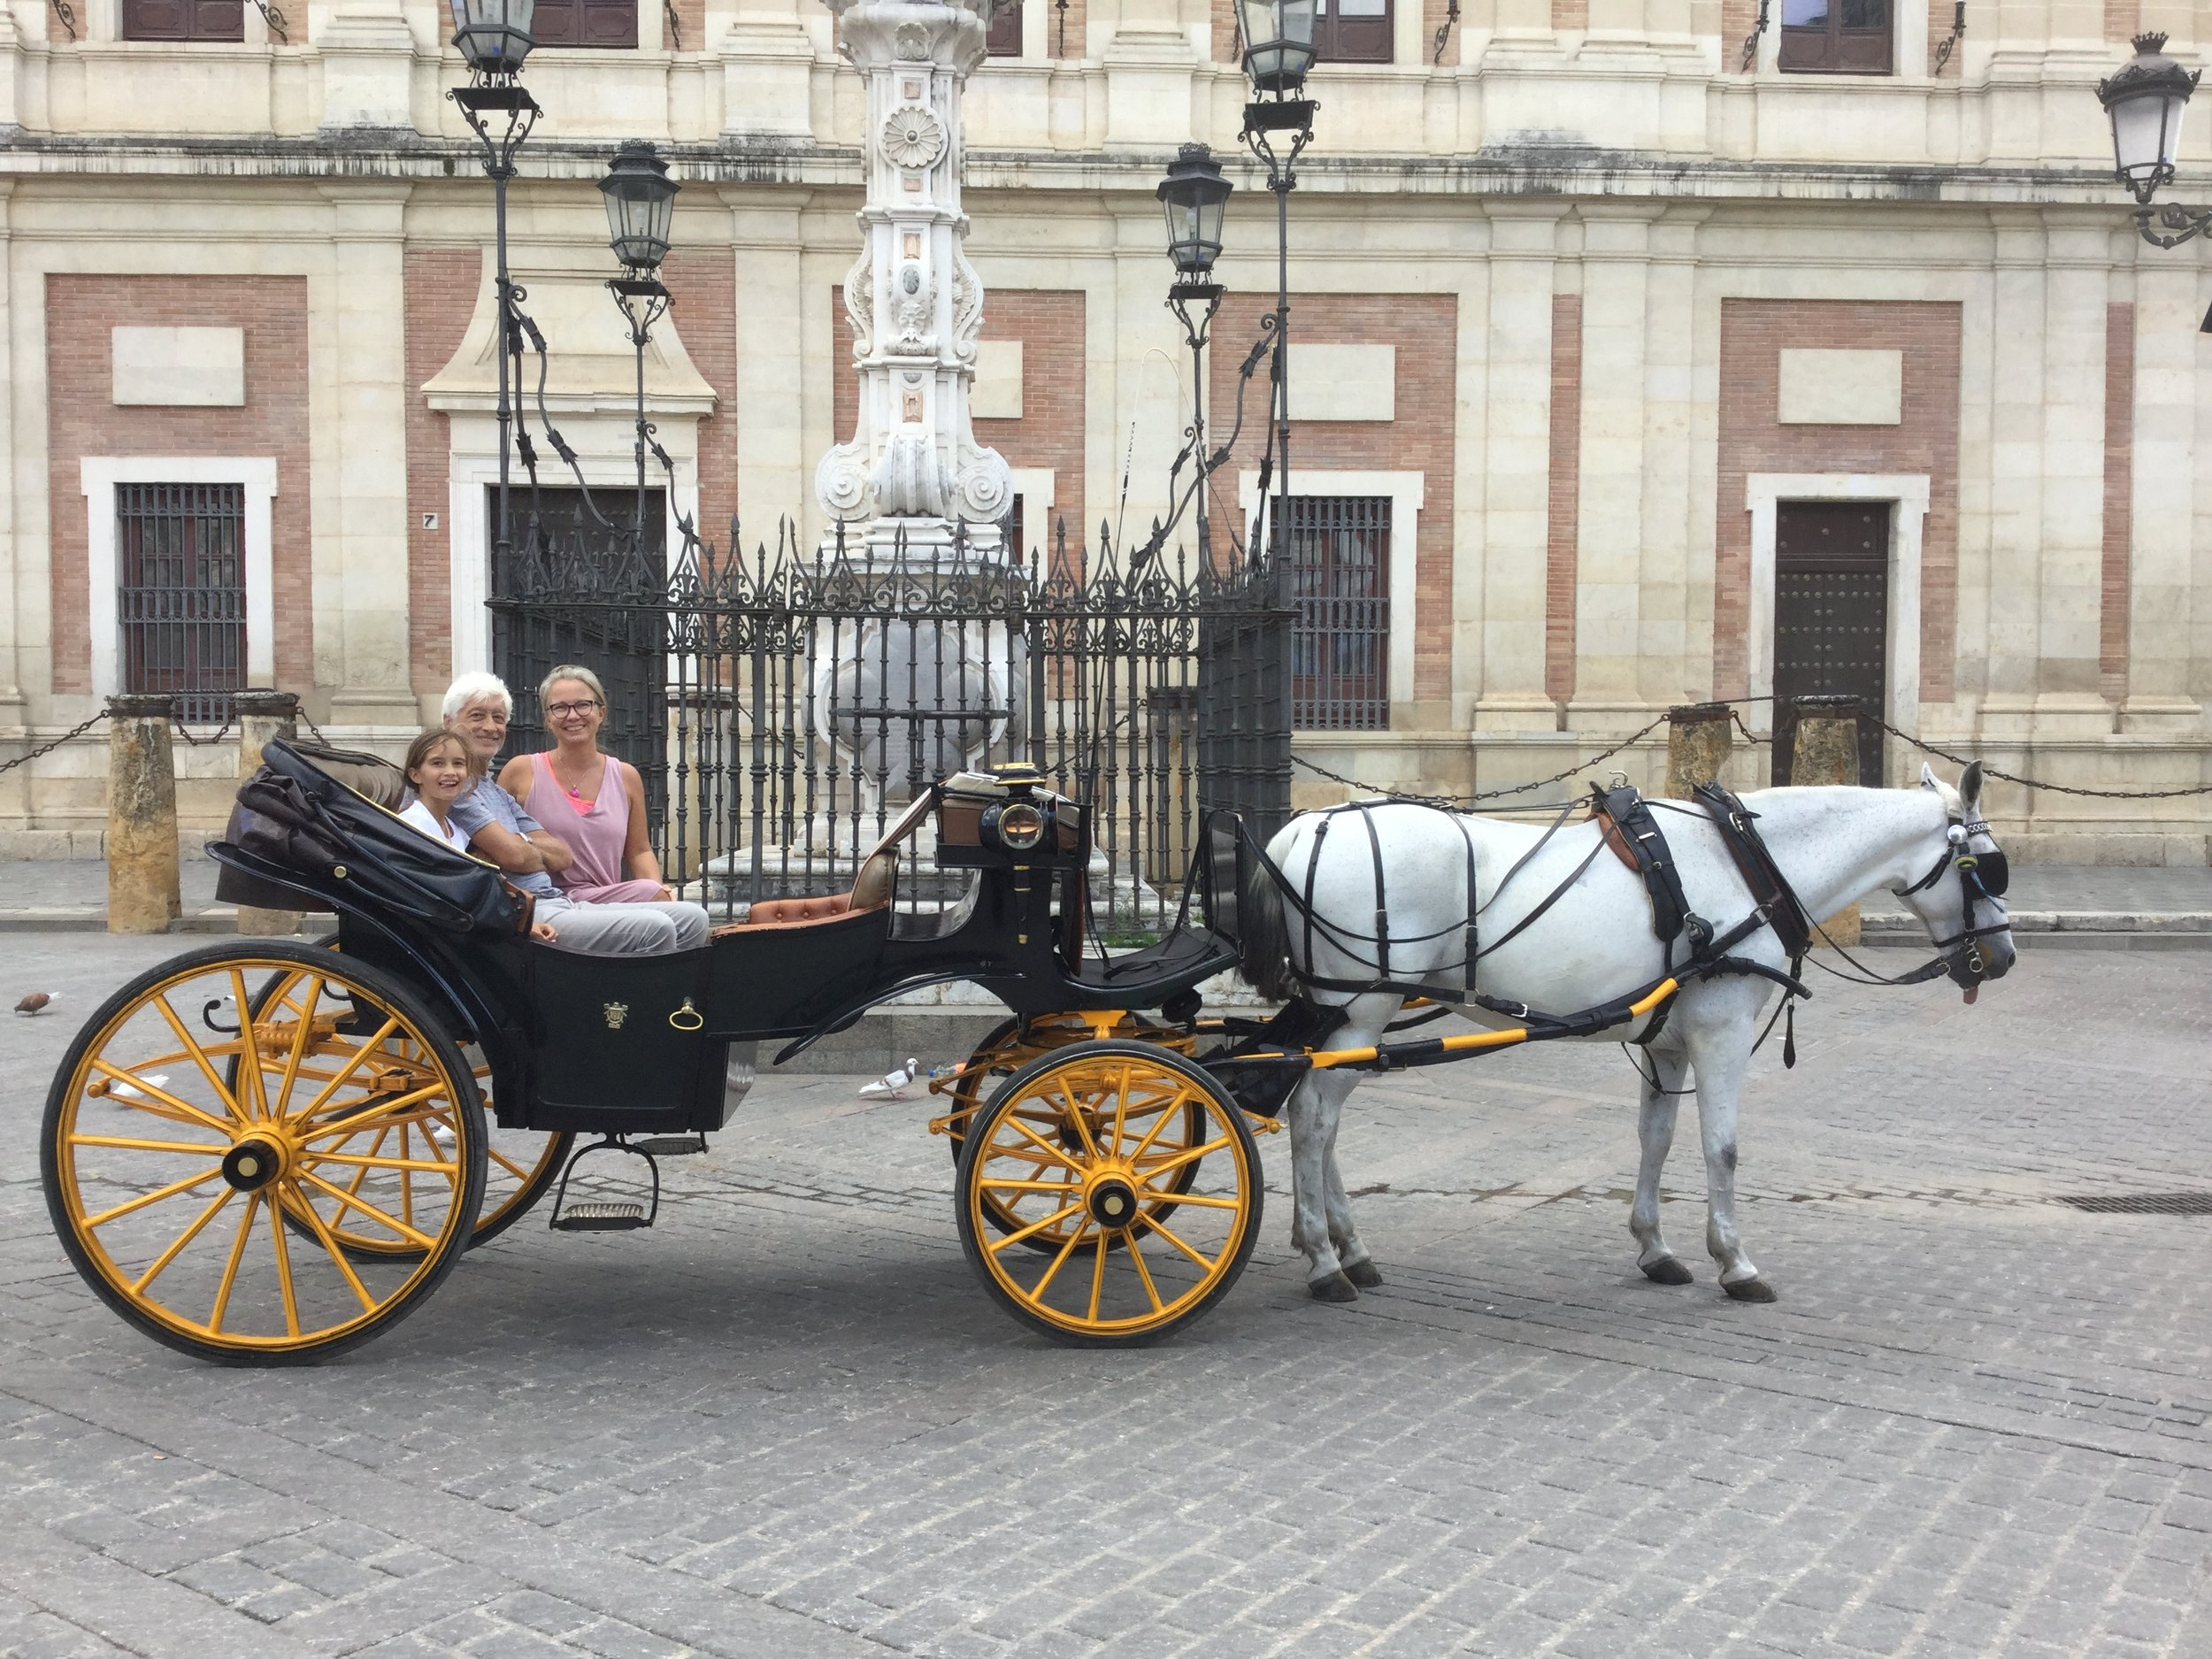 The horse and carriage in whole.